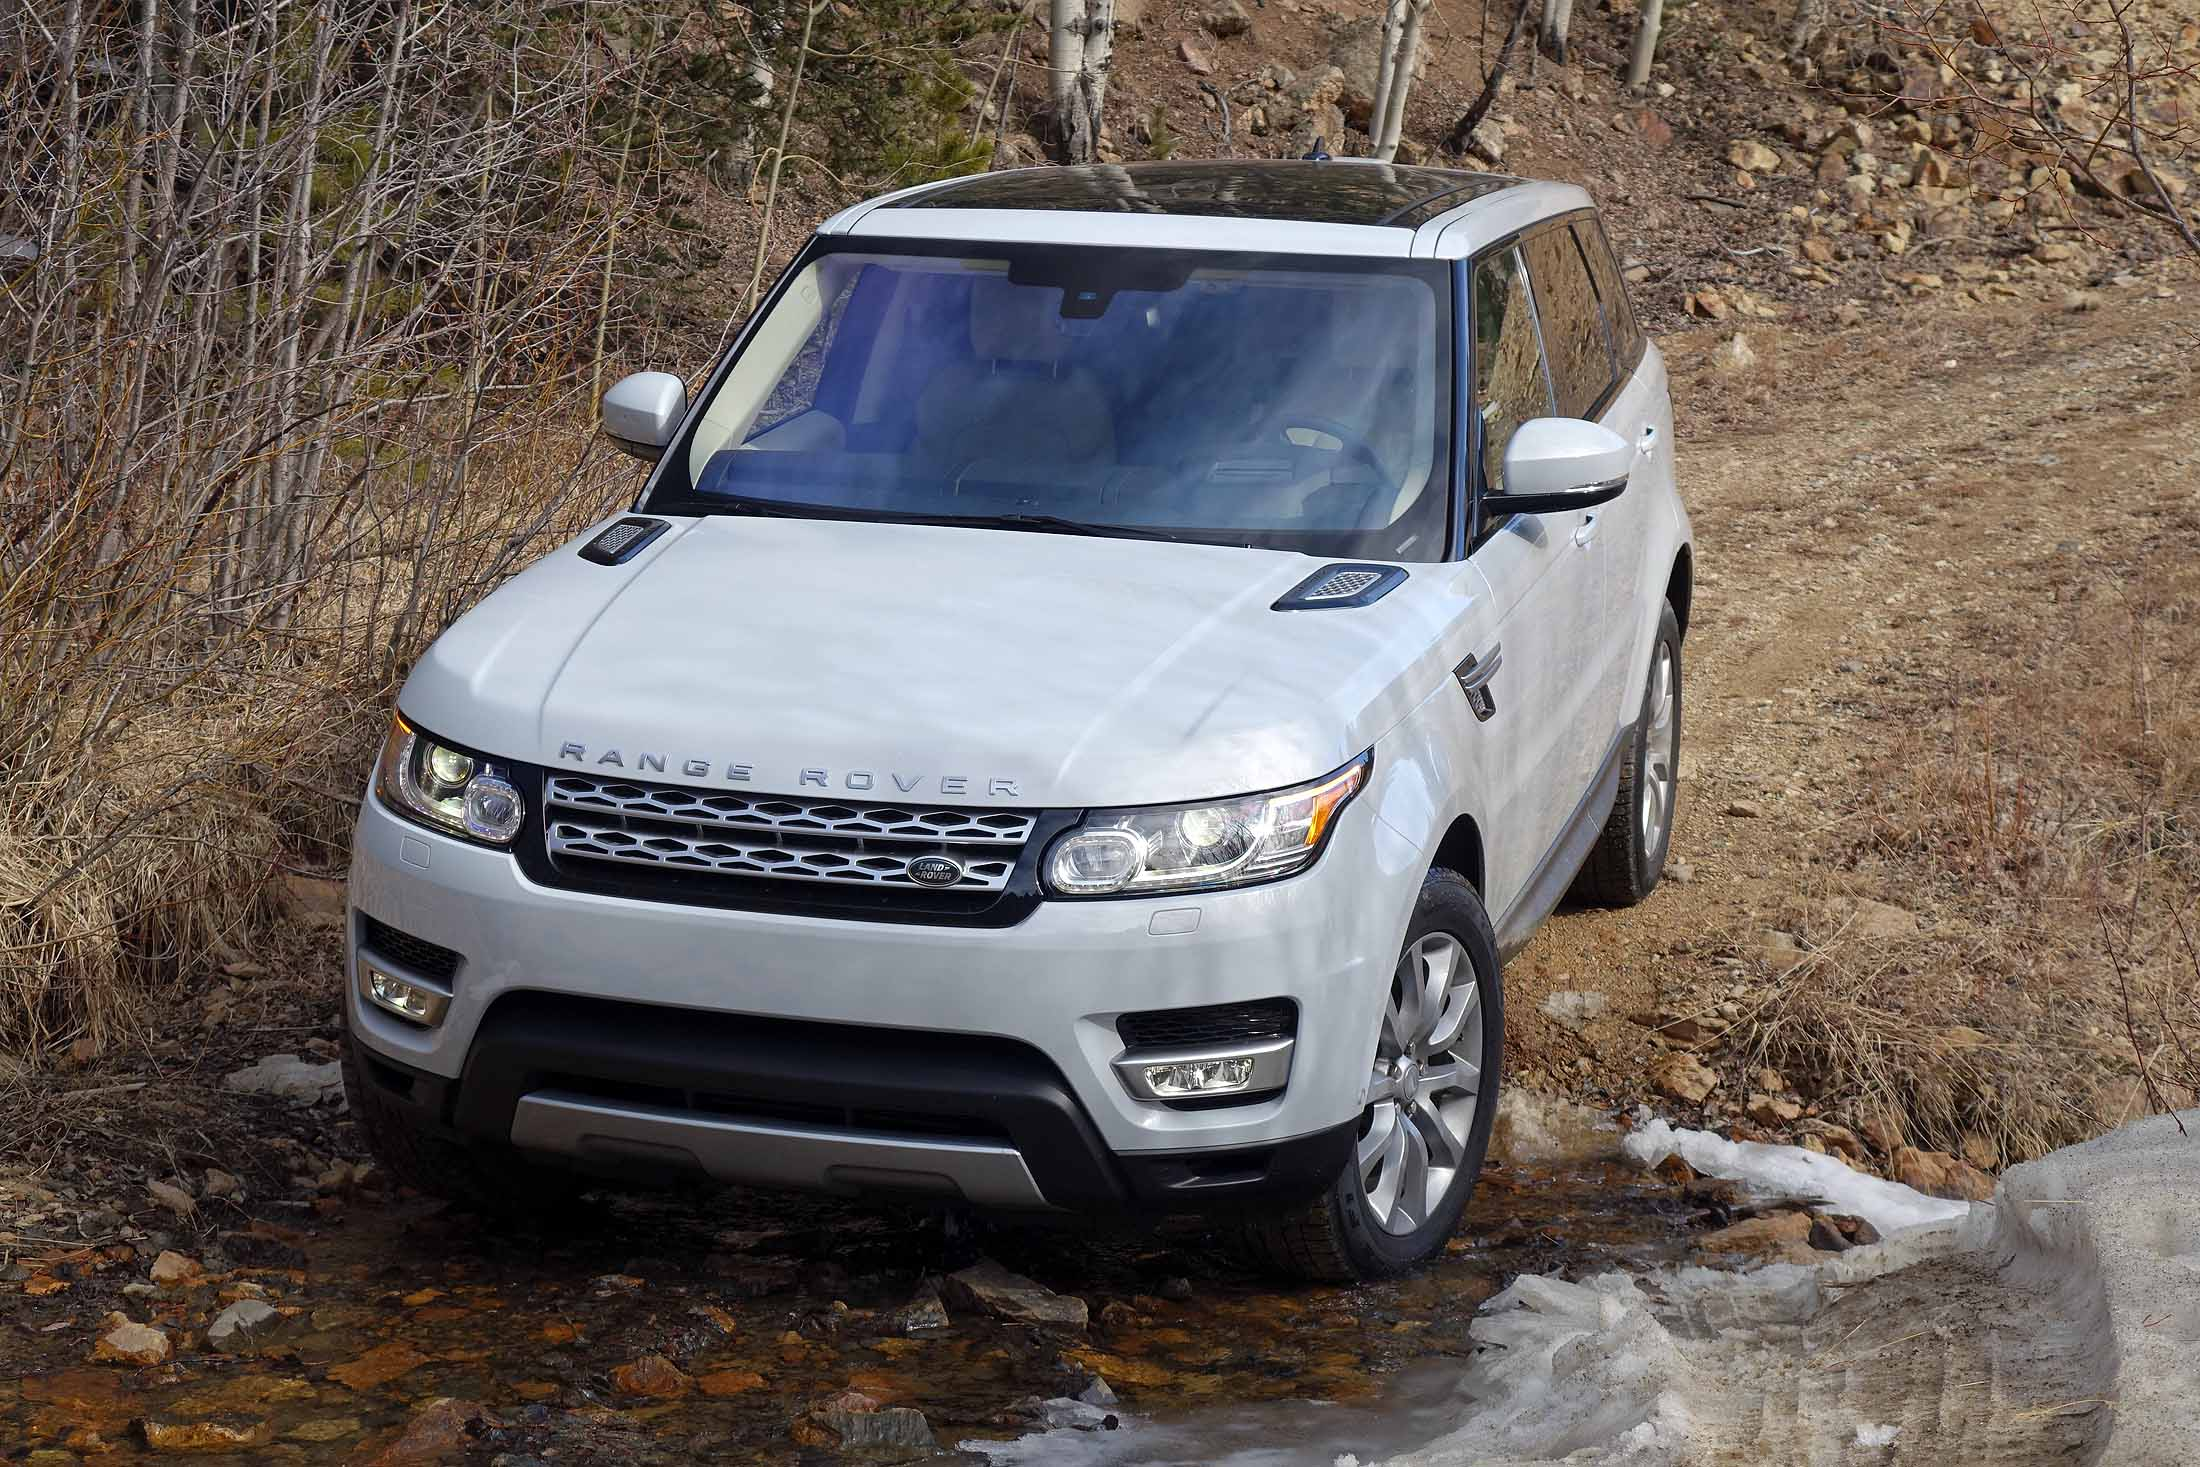 2016 Land Rover Range Rover Sport HSE Td6 fuel economy review of